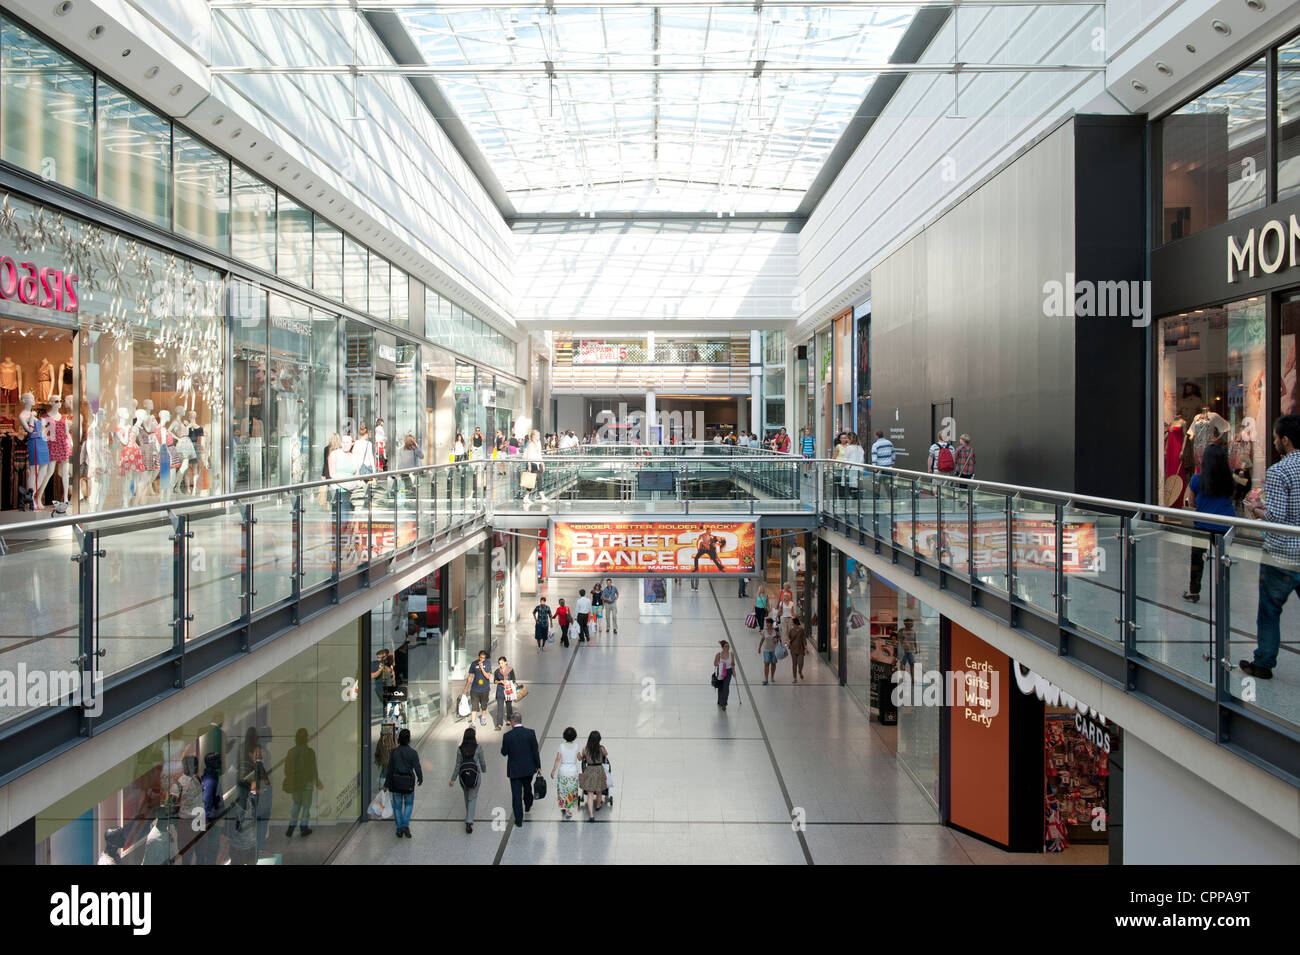 An internal shot of Manchester Arndale shopping centre mall located in the city centre. - Stock Image